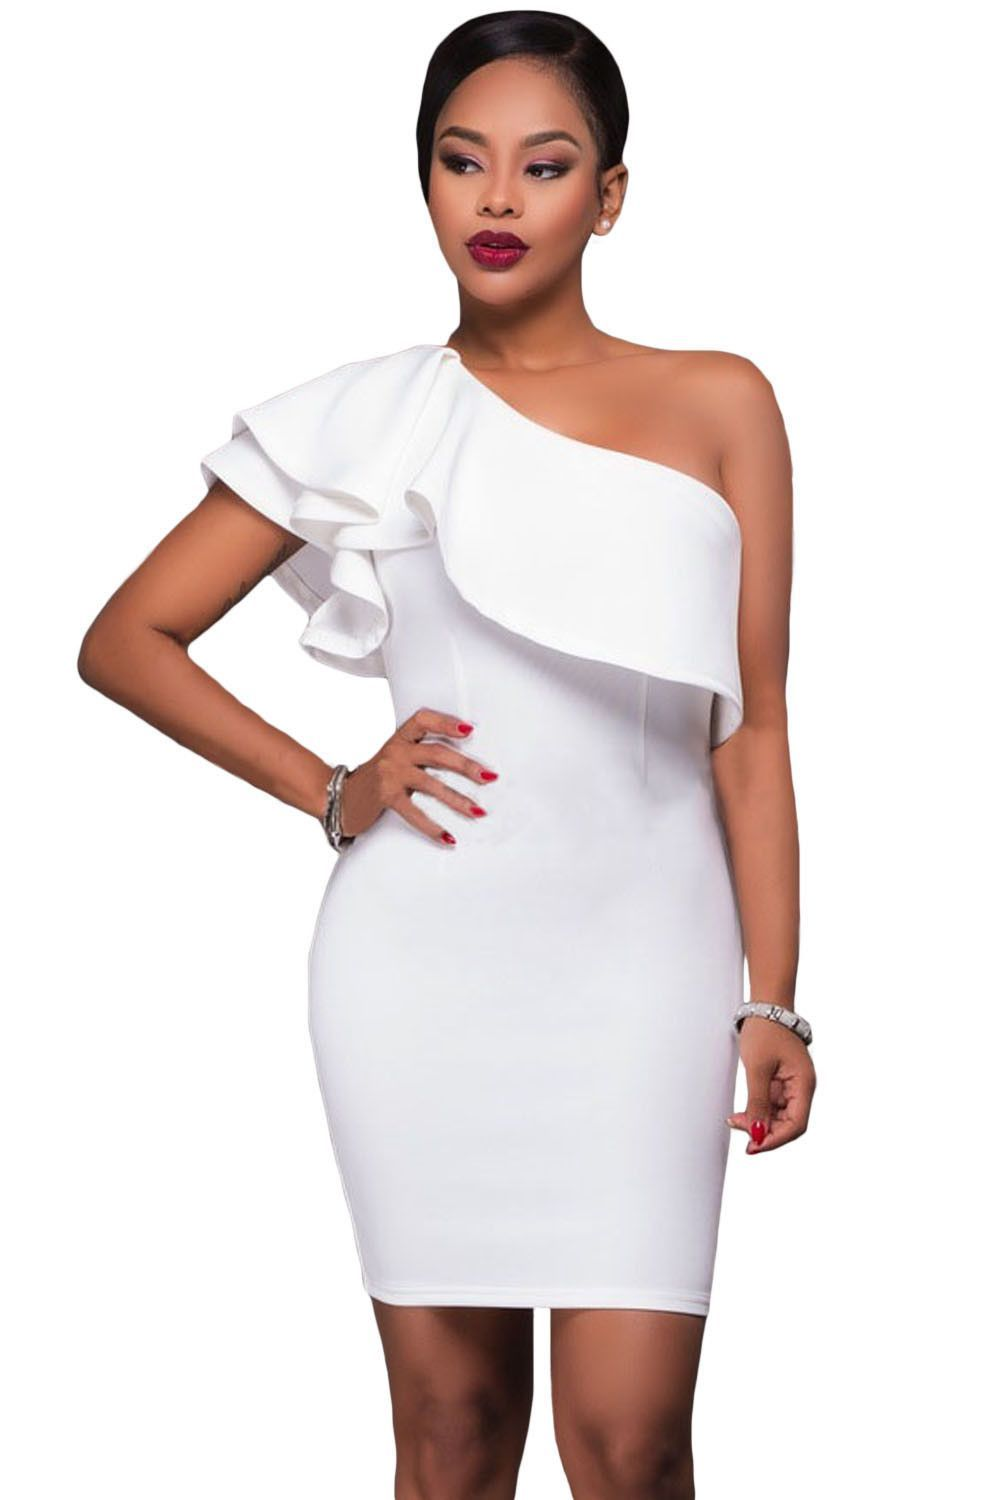 8e5a654e1be Robes Courtes Blanches de Soiree Moulante Asymetrique Collerette Pas Cher  www.modebuy.com  Modebuy  Modebuy  Blanc  robes  me  style